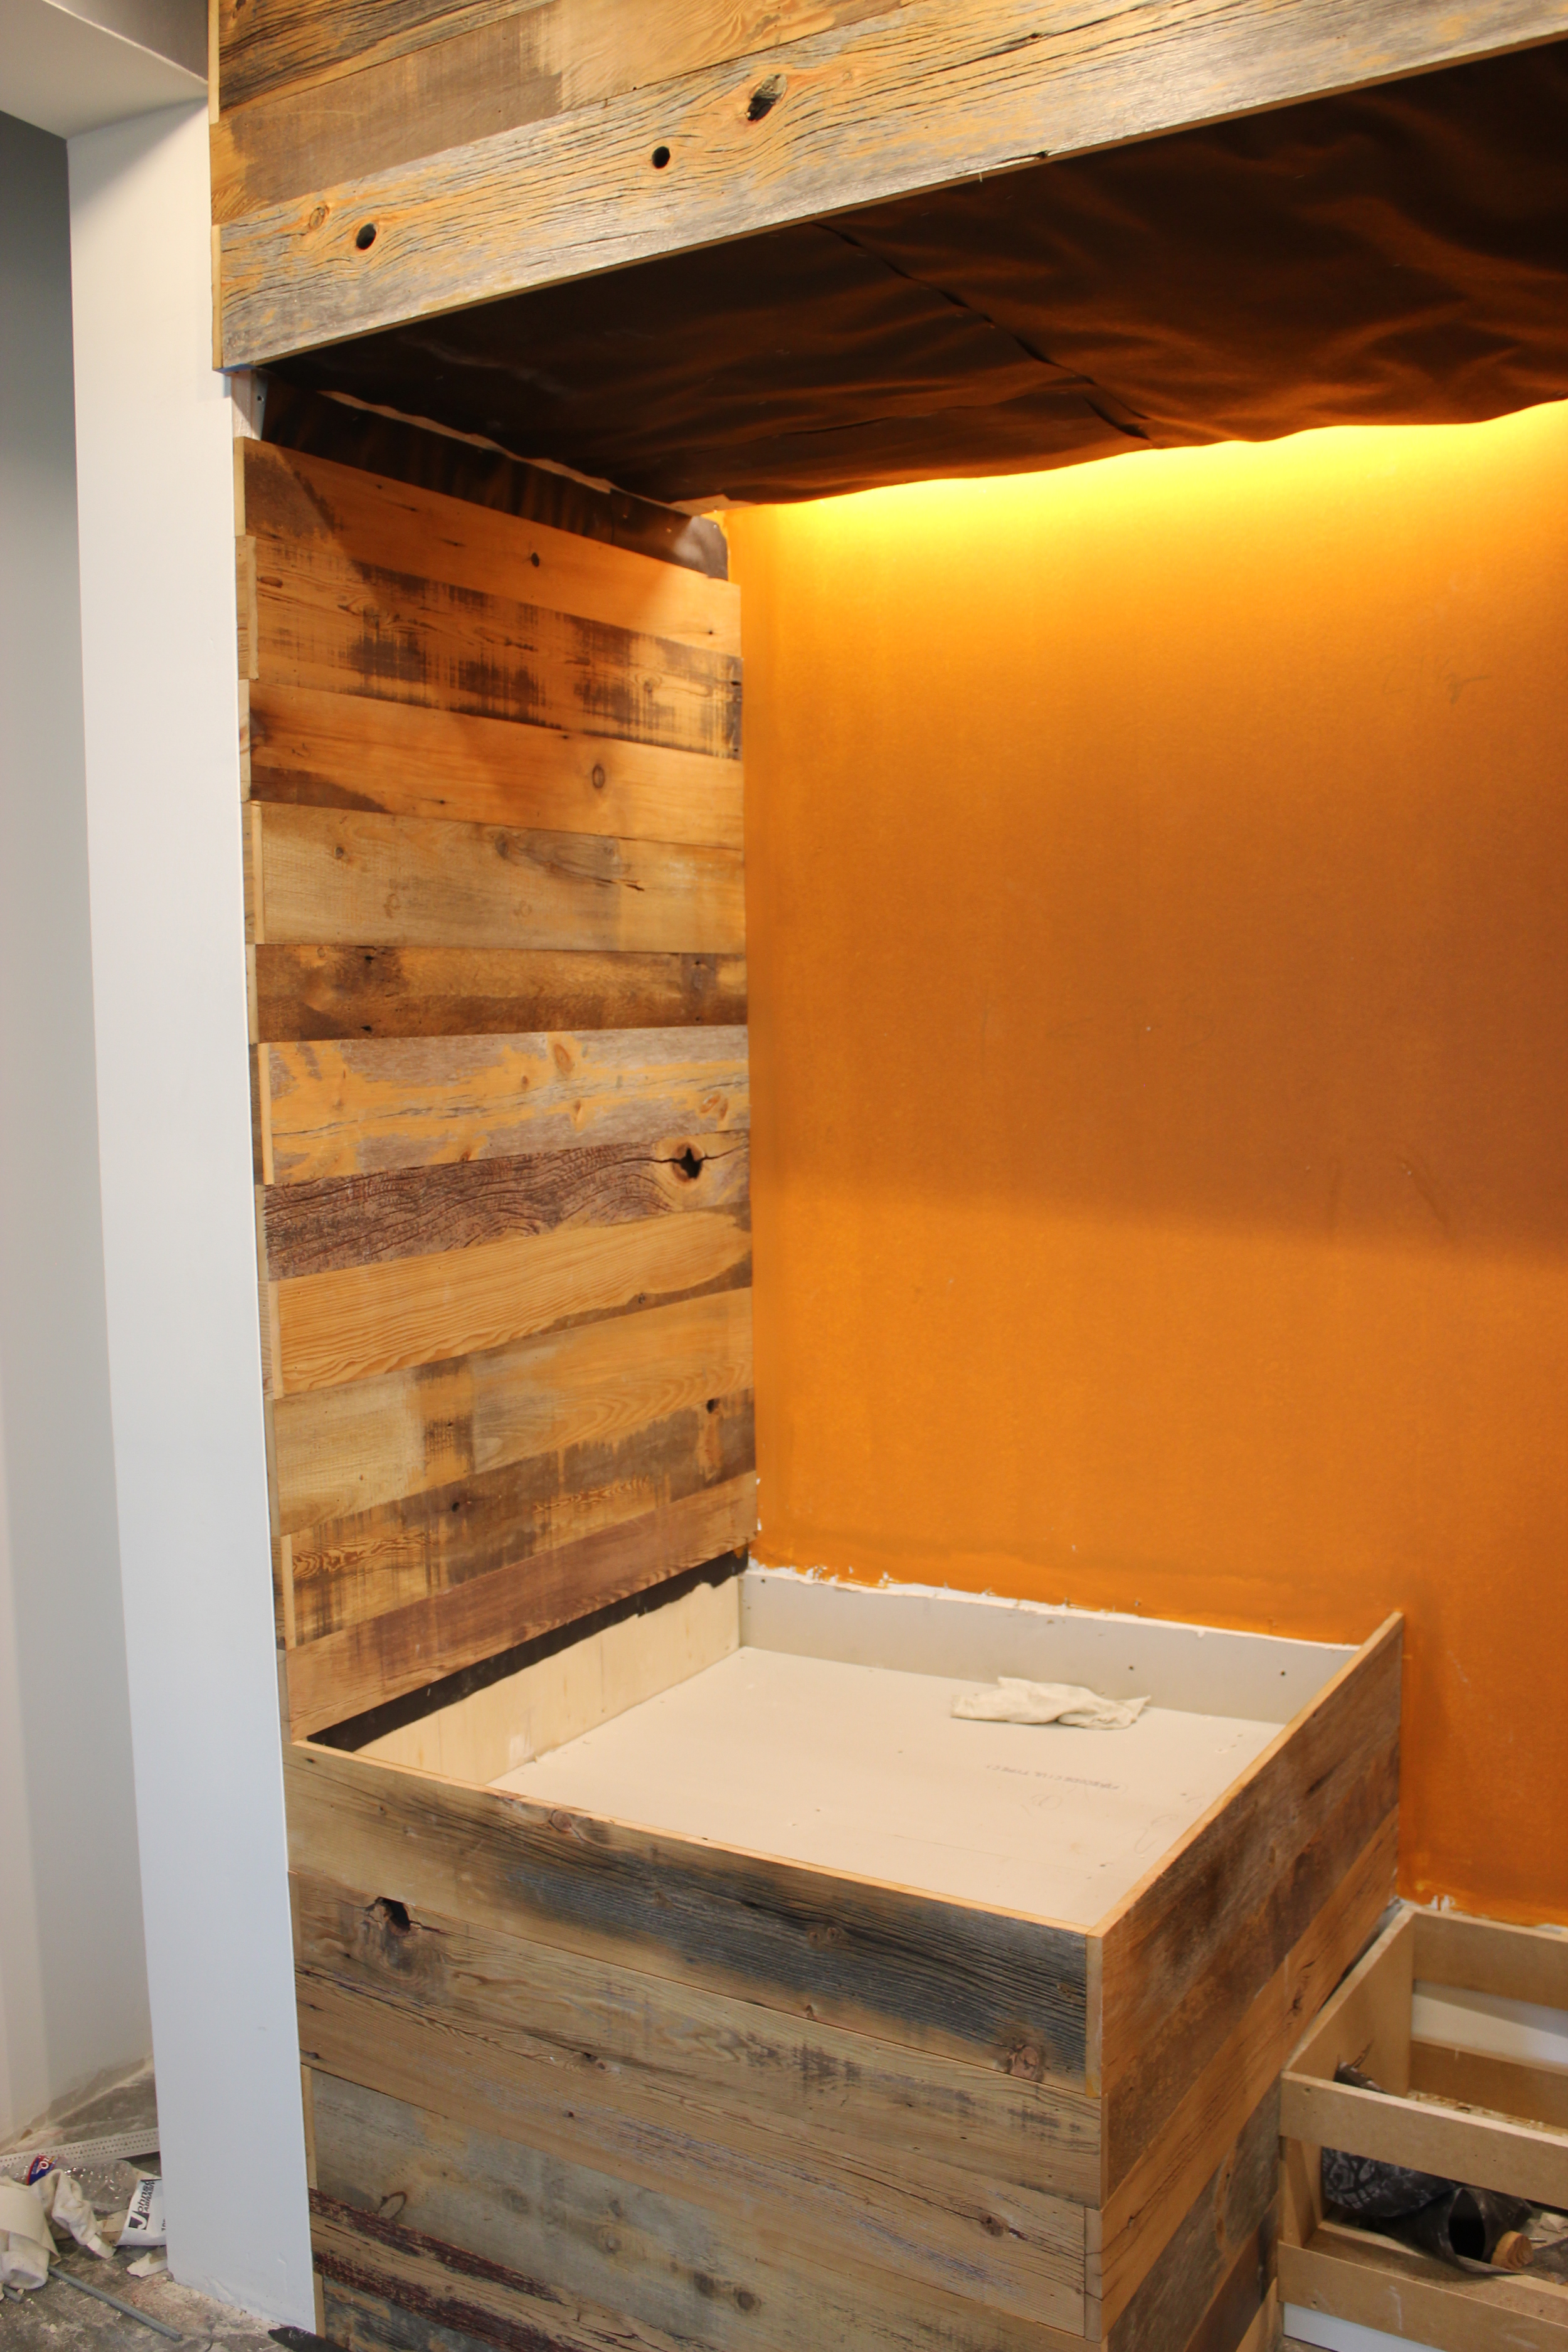 CRC Mastercraft did an excellent job installing the wall paneling.